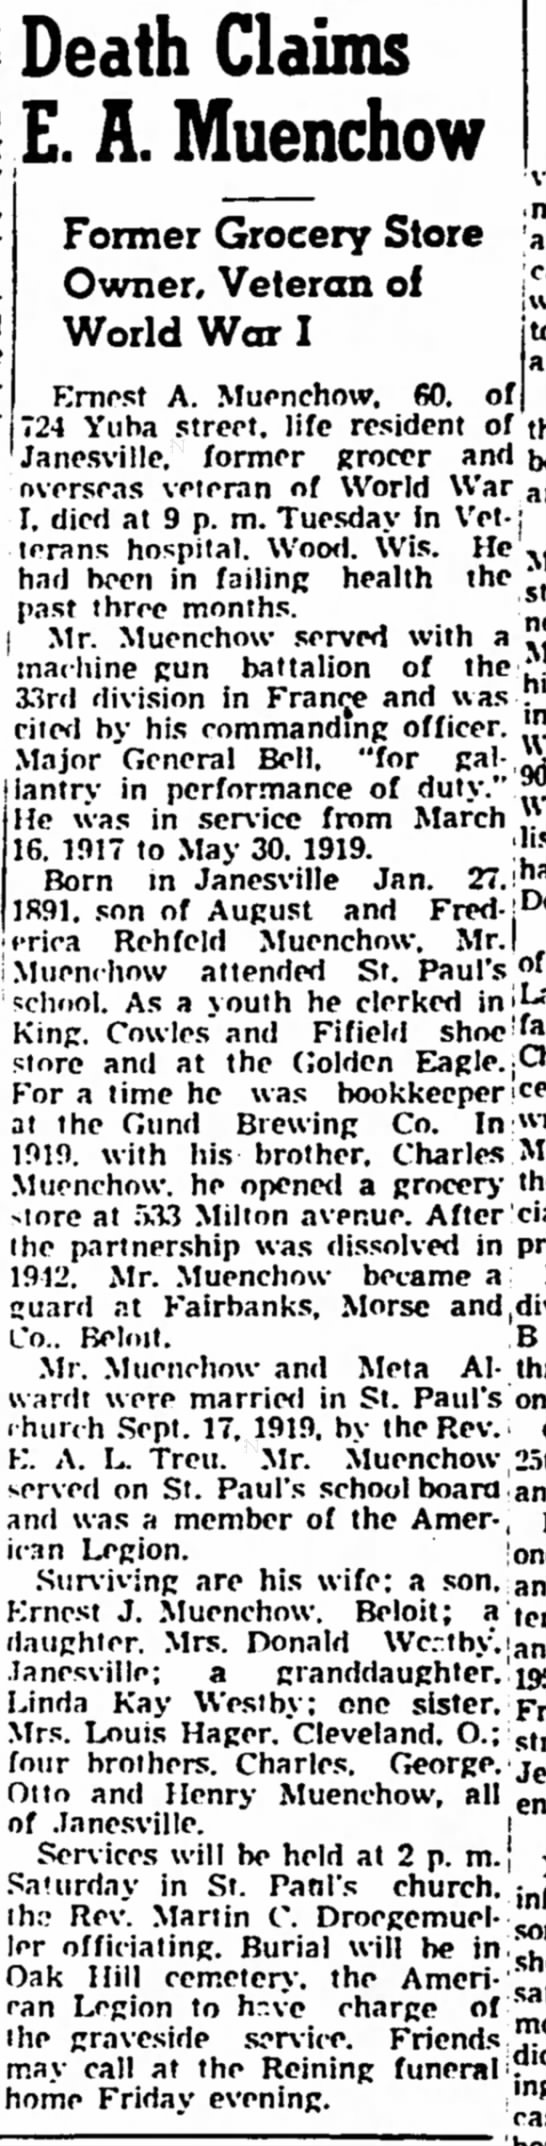 Ernest Muenchow Obit 19 Dec 1951 - Death Claims E. A. Muenchow Former Grocery...